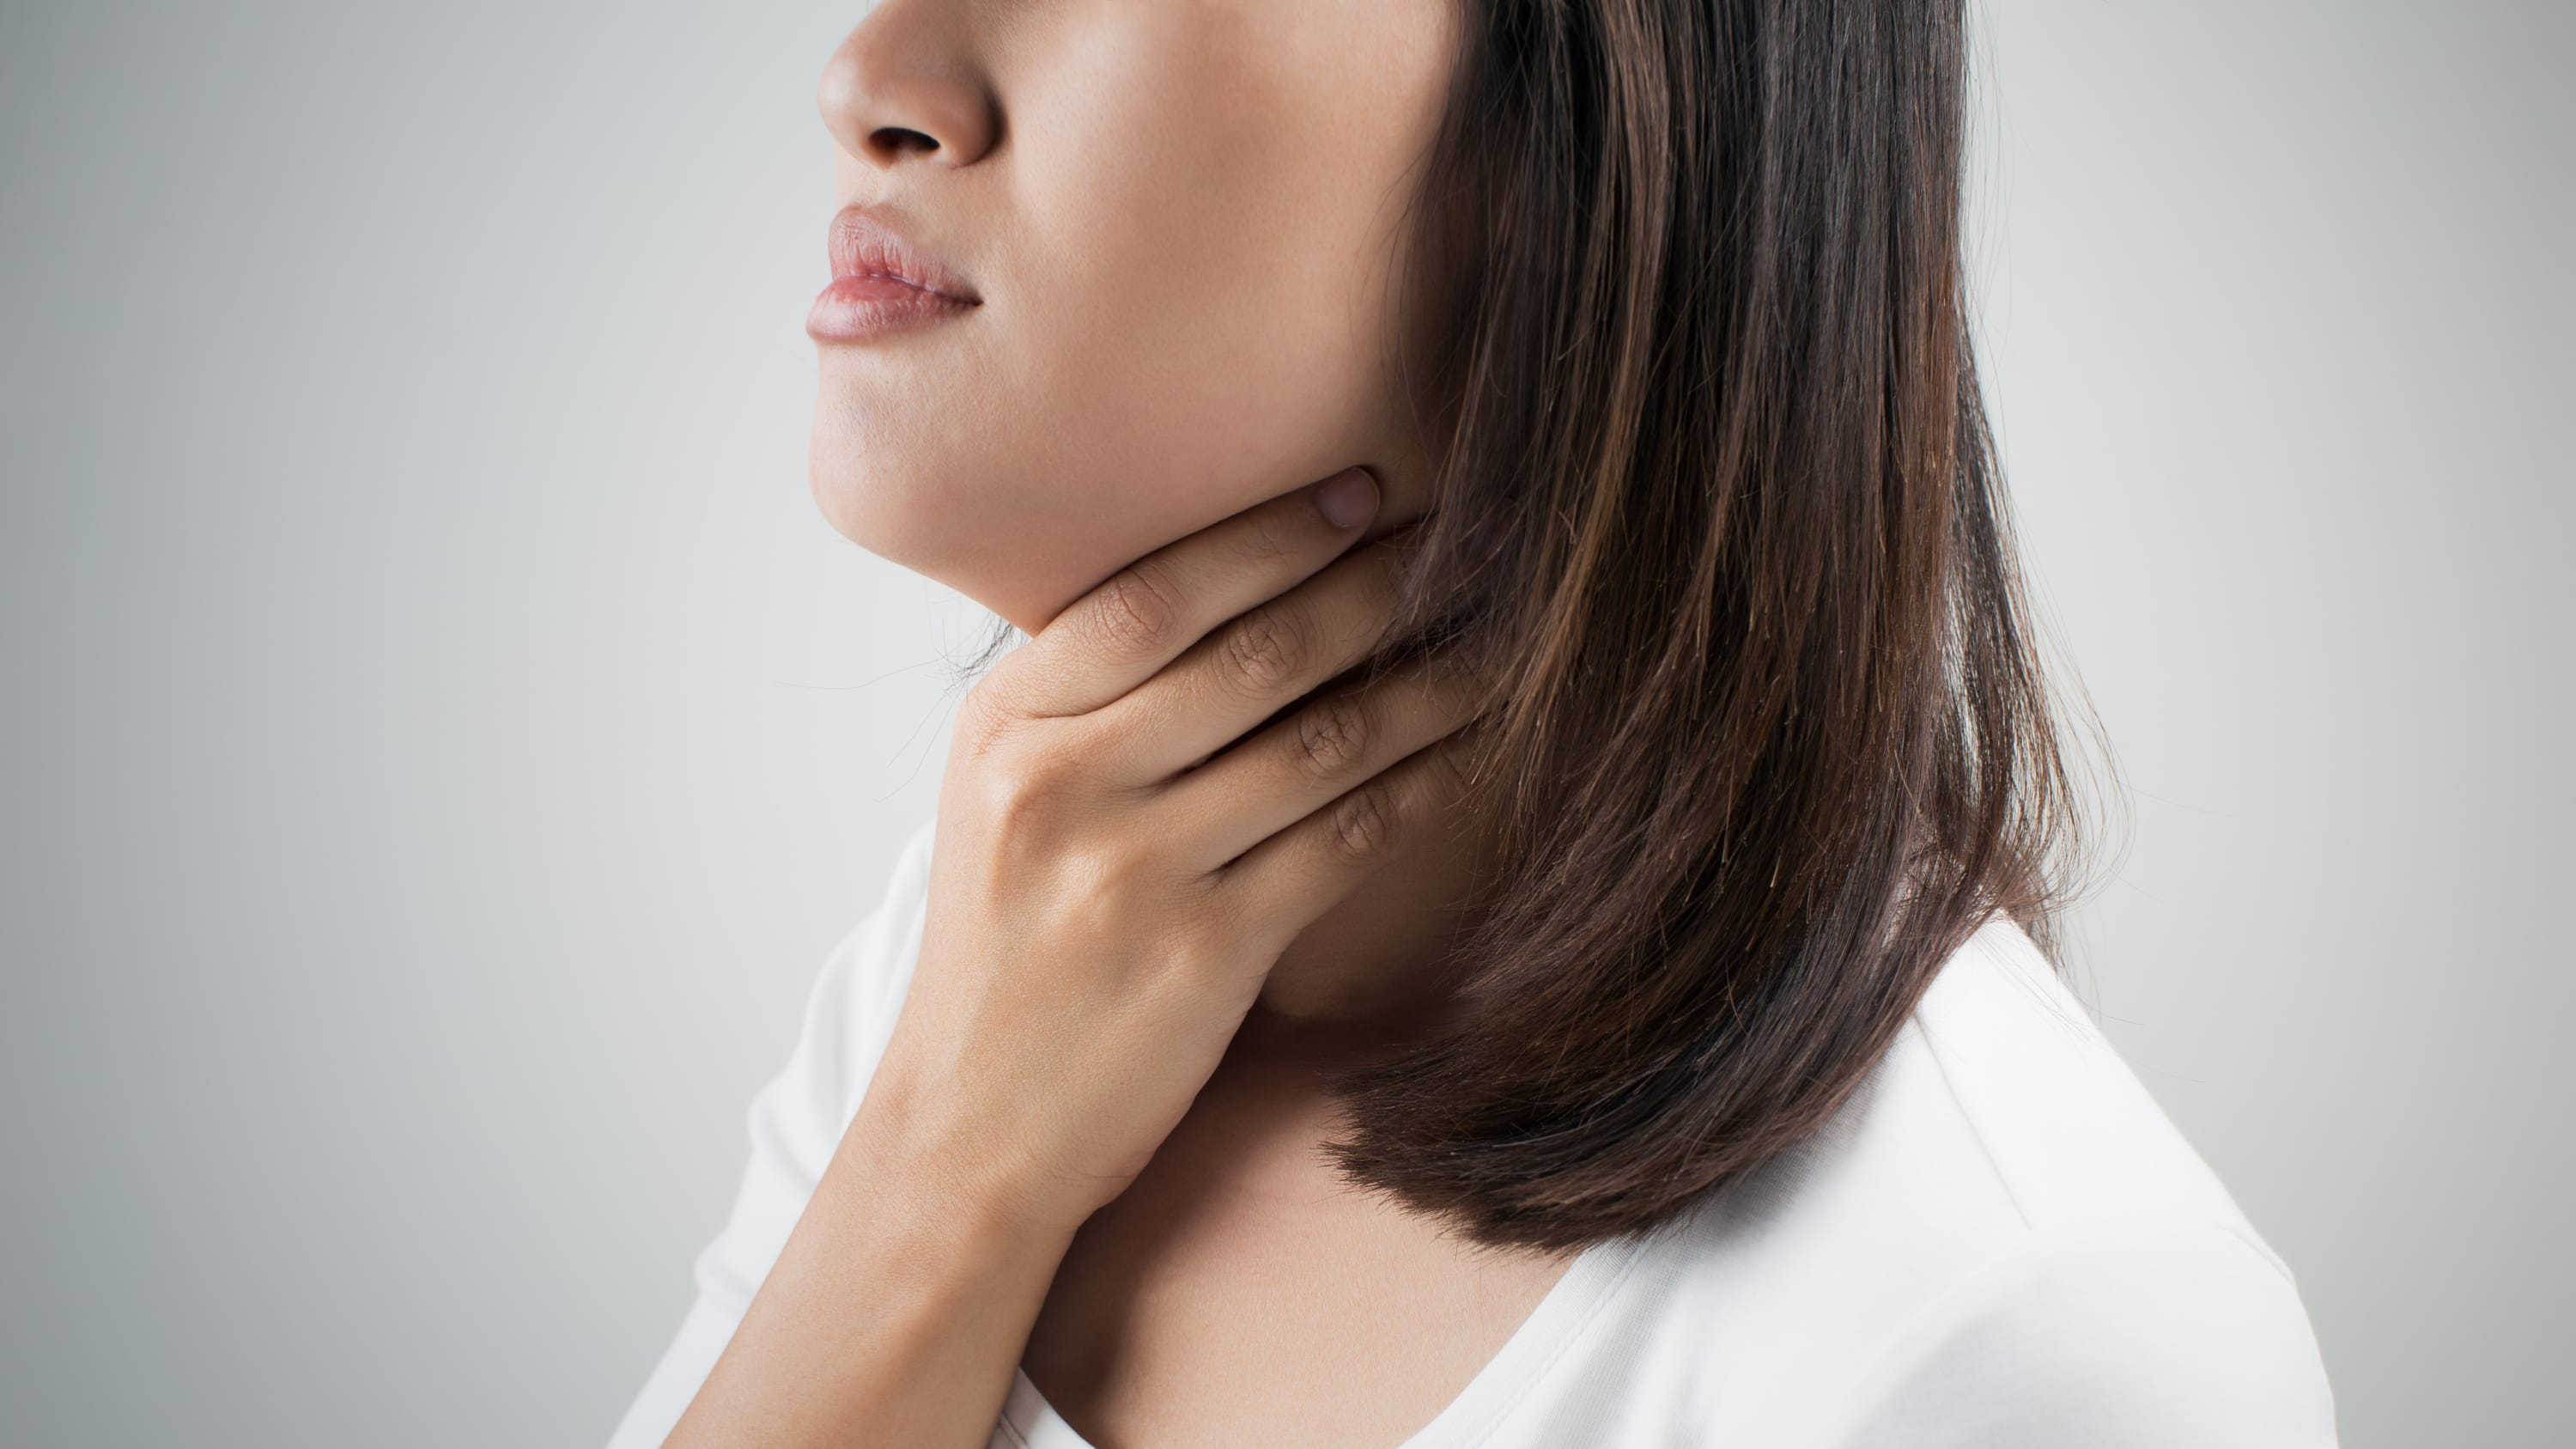 A woman with a thyroid disorder holds her throat.